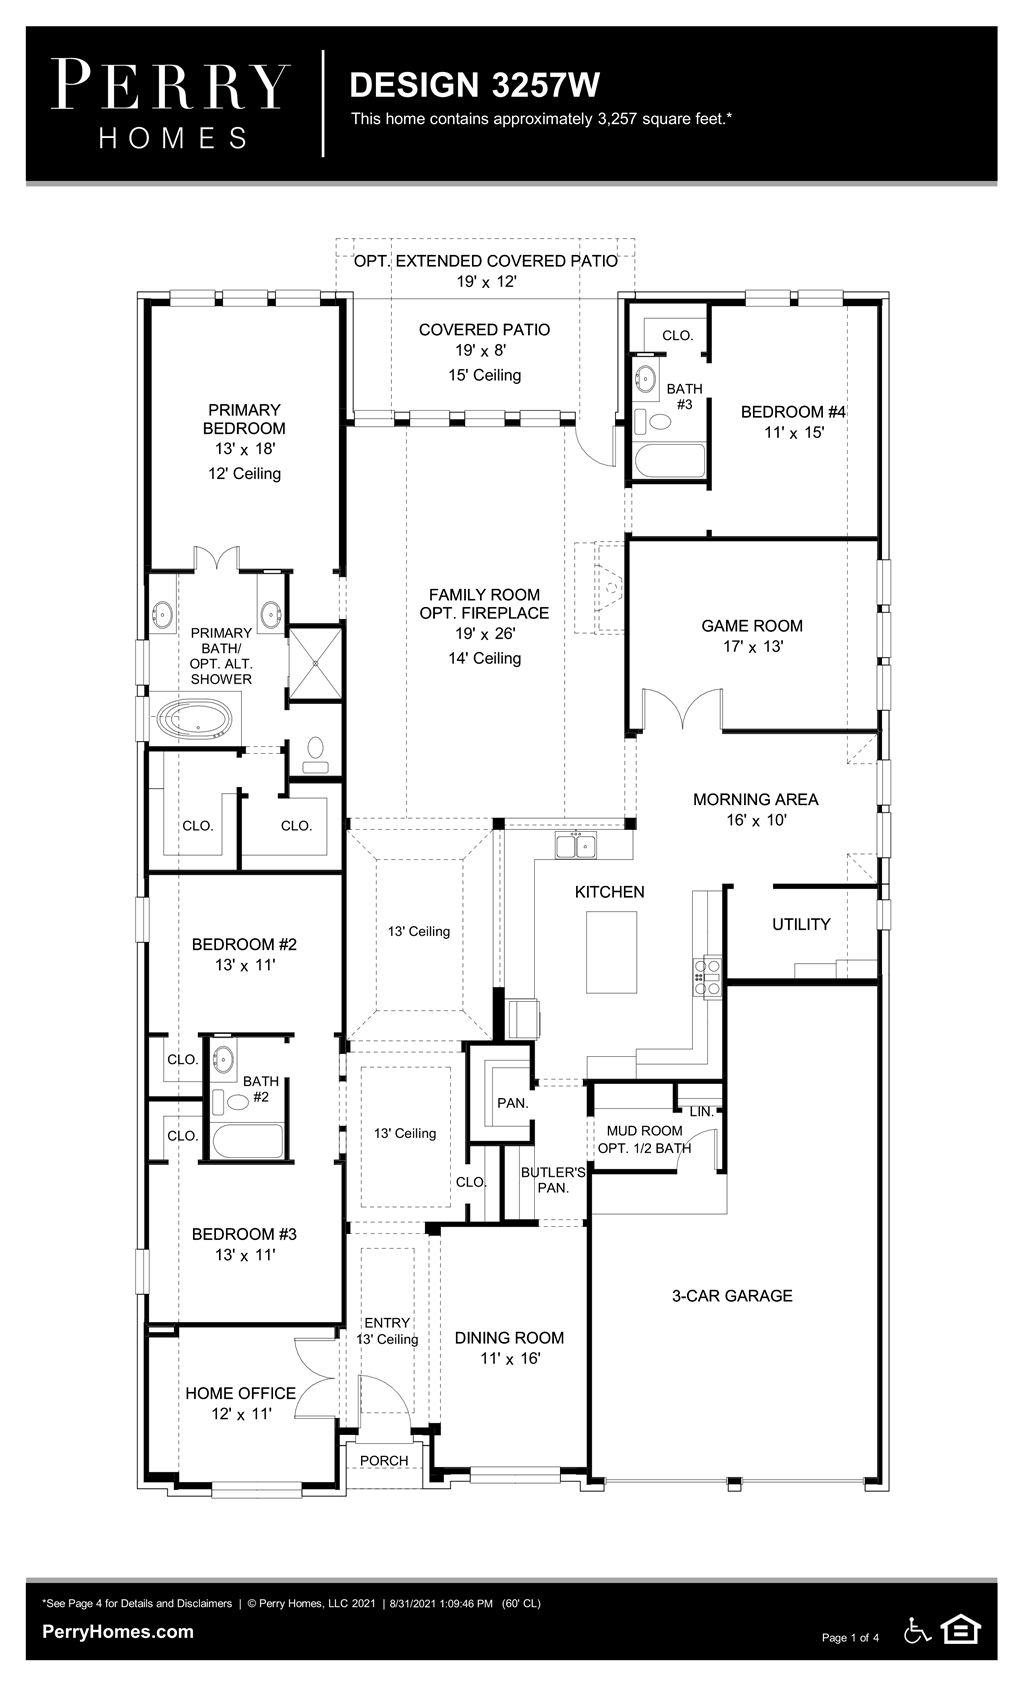 Floor Plan for 3257W